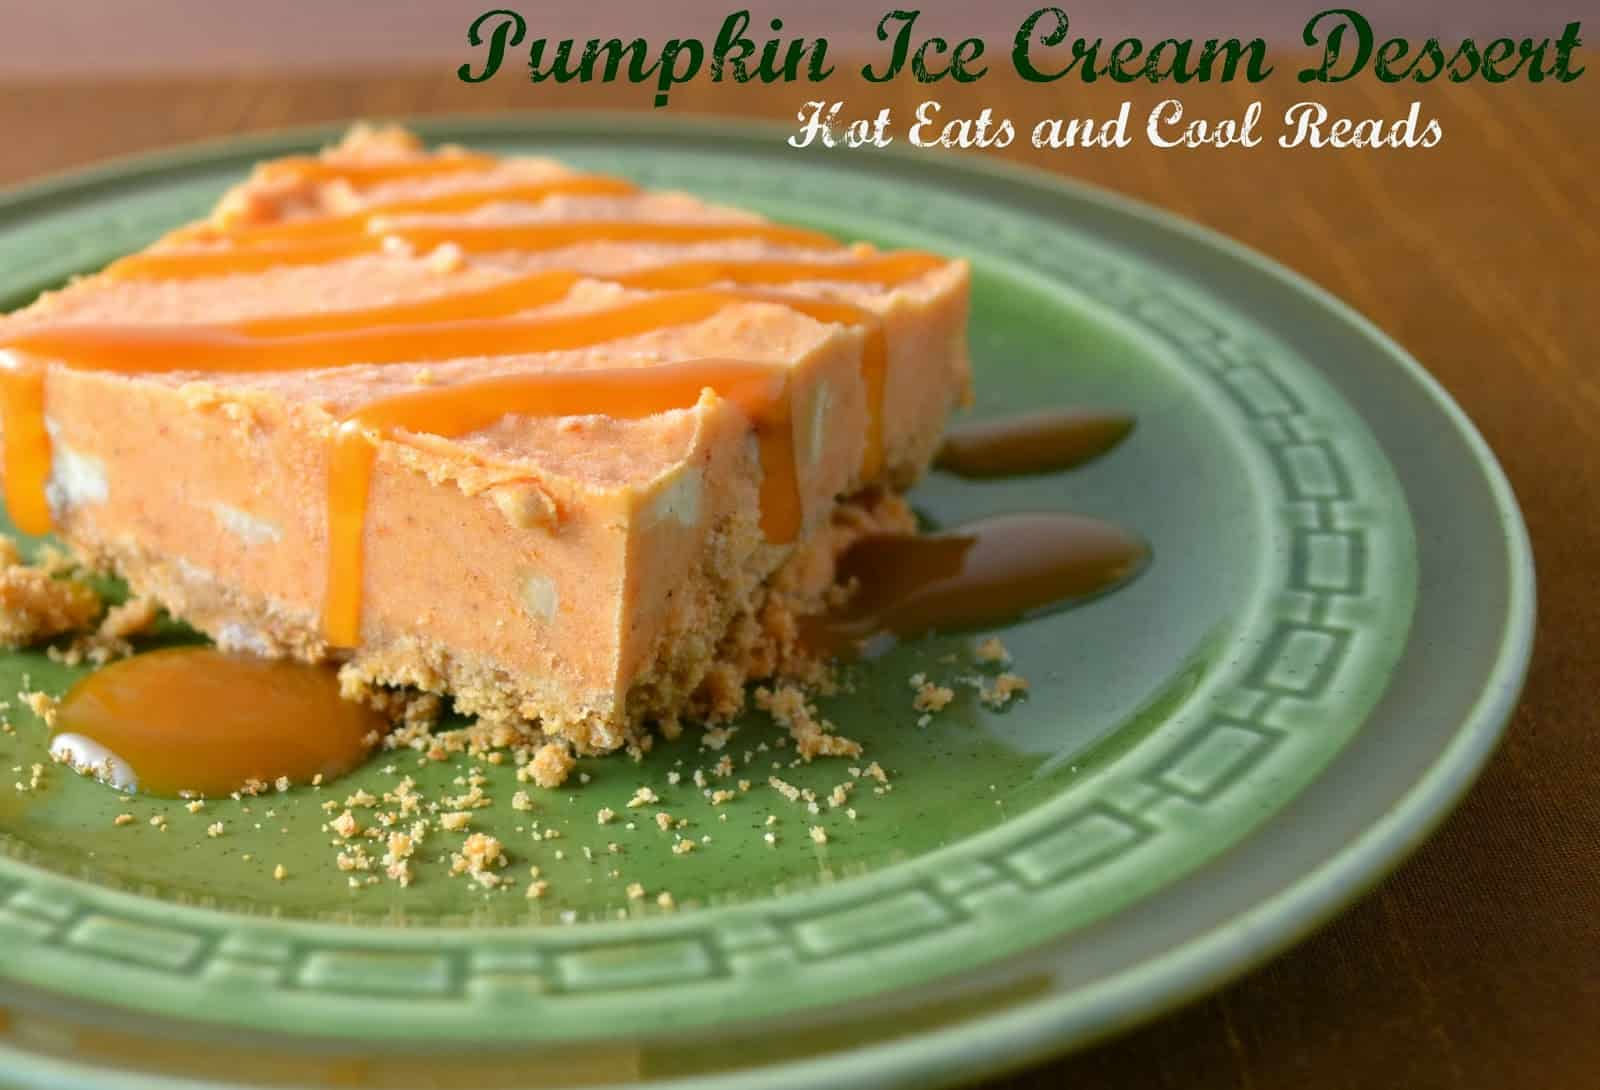 Pumpkin ice cream dessert